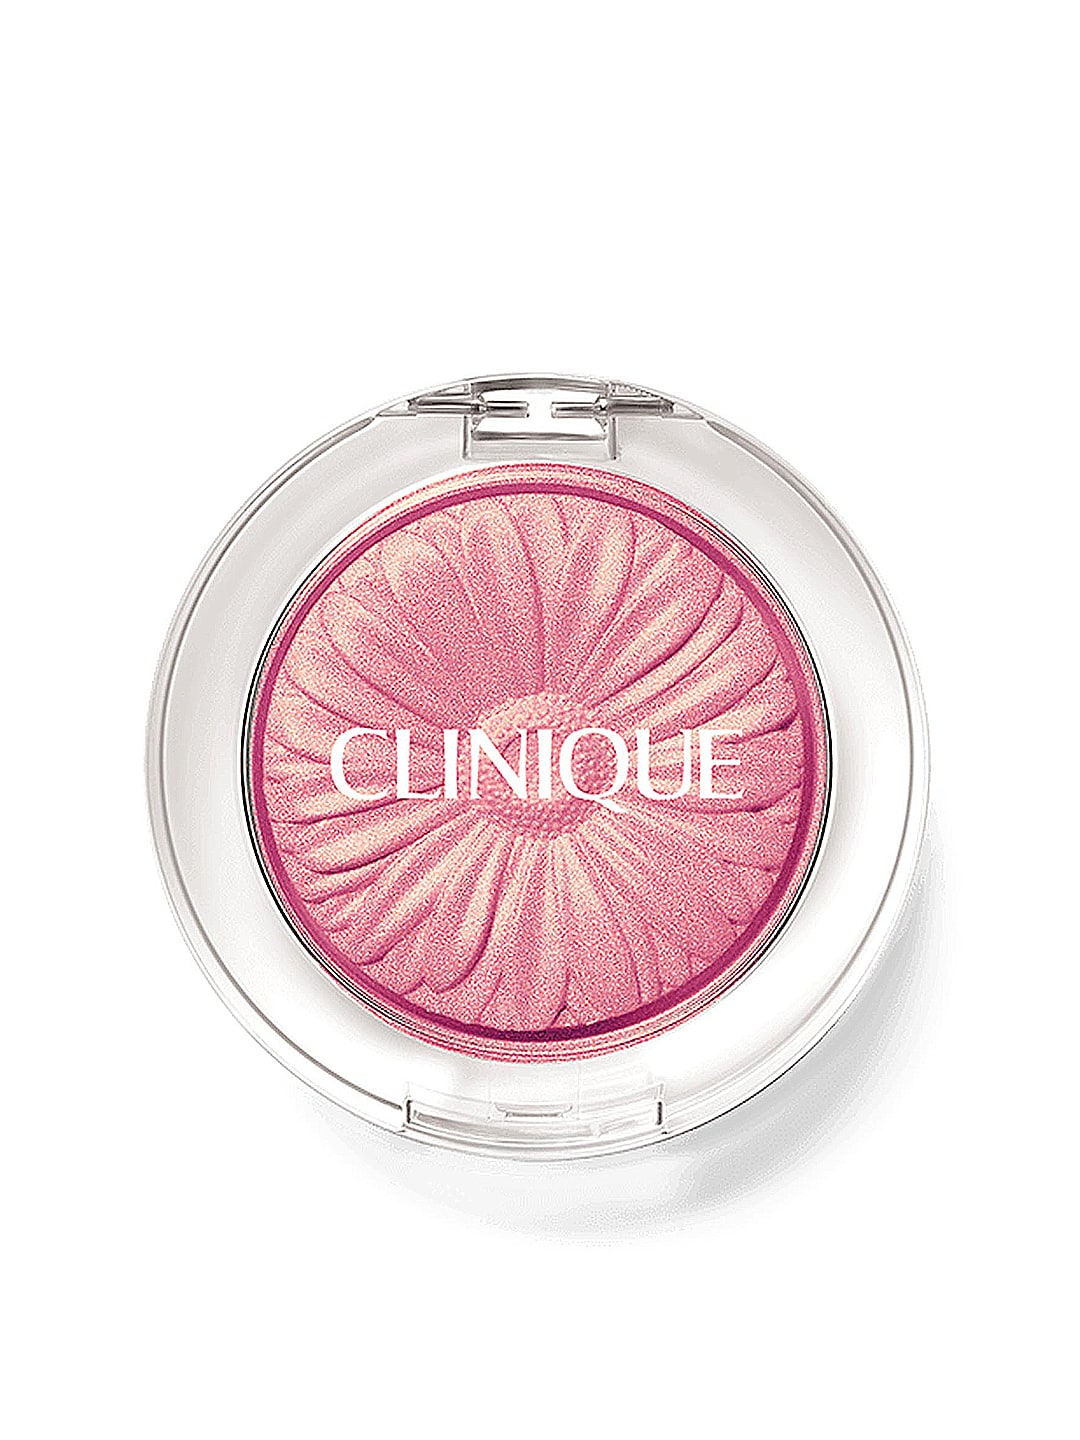 Clinique Petal Pop Lid Pop image